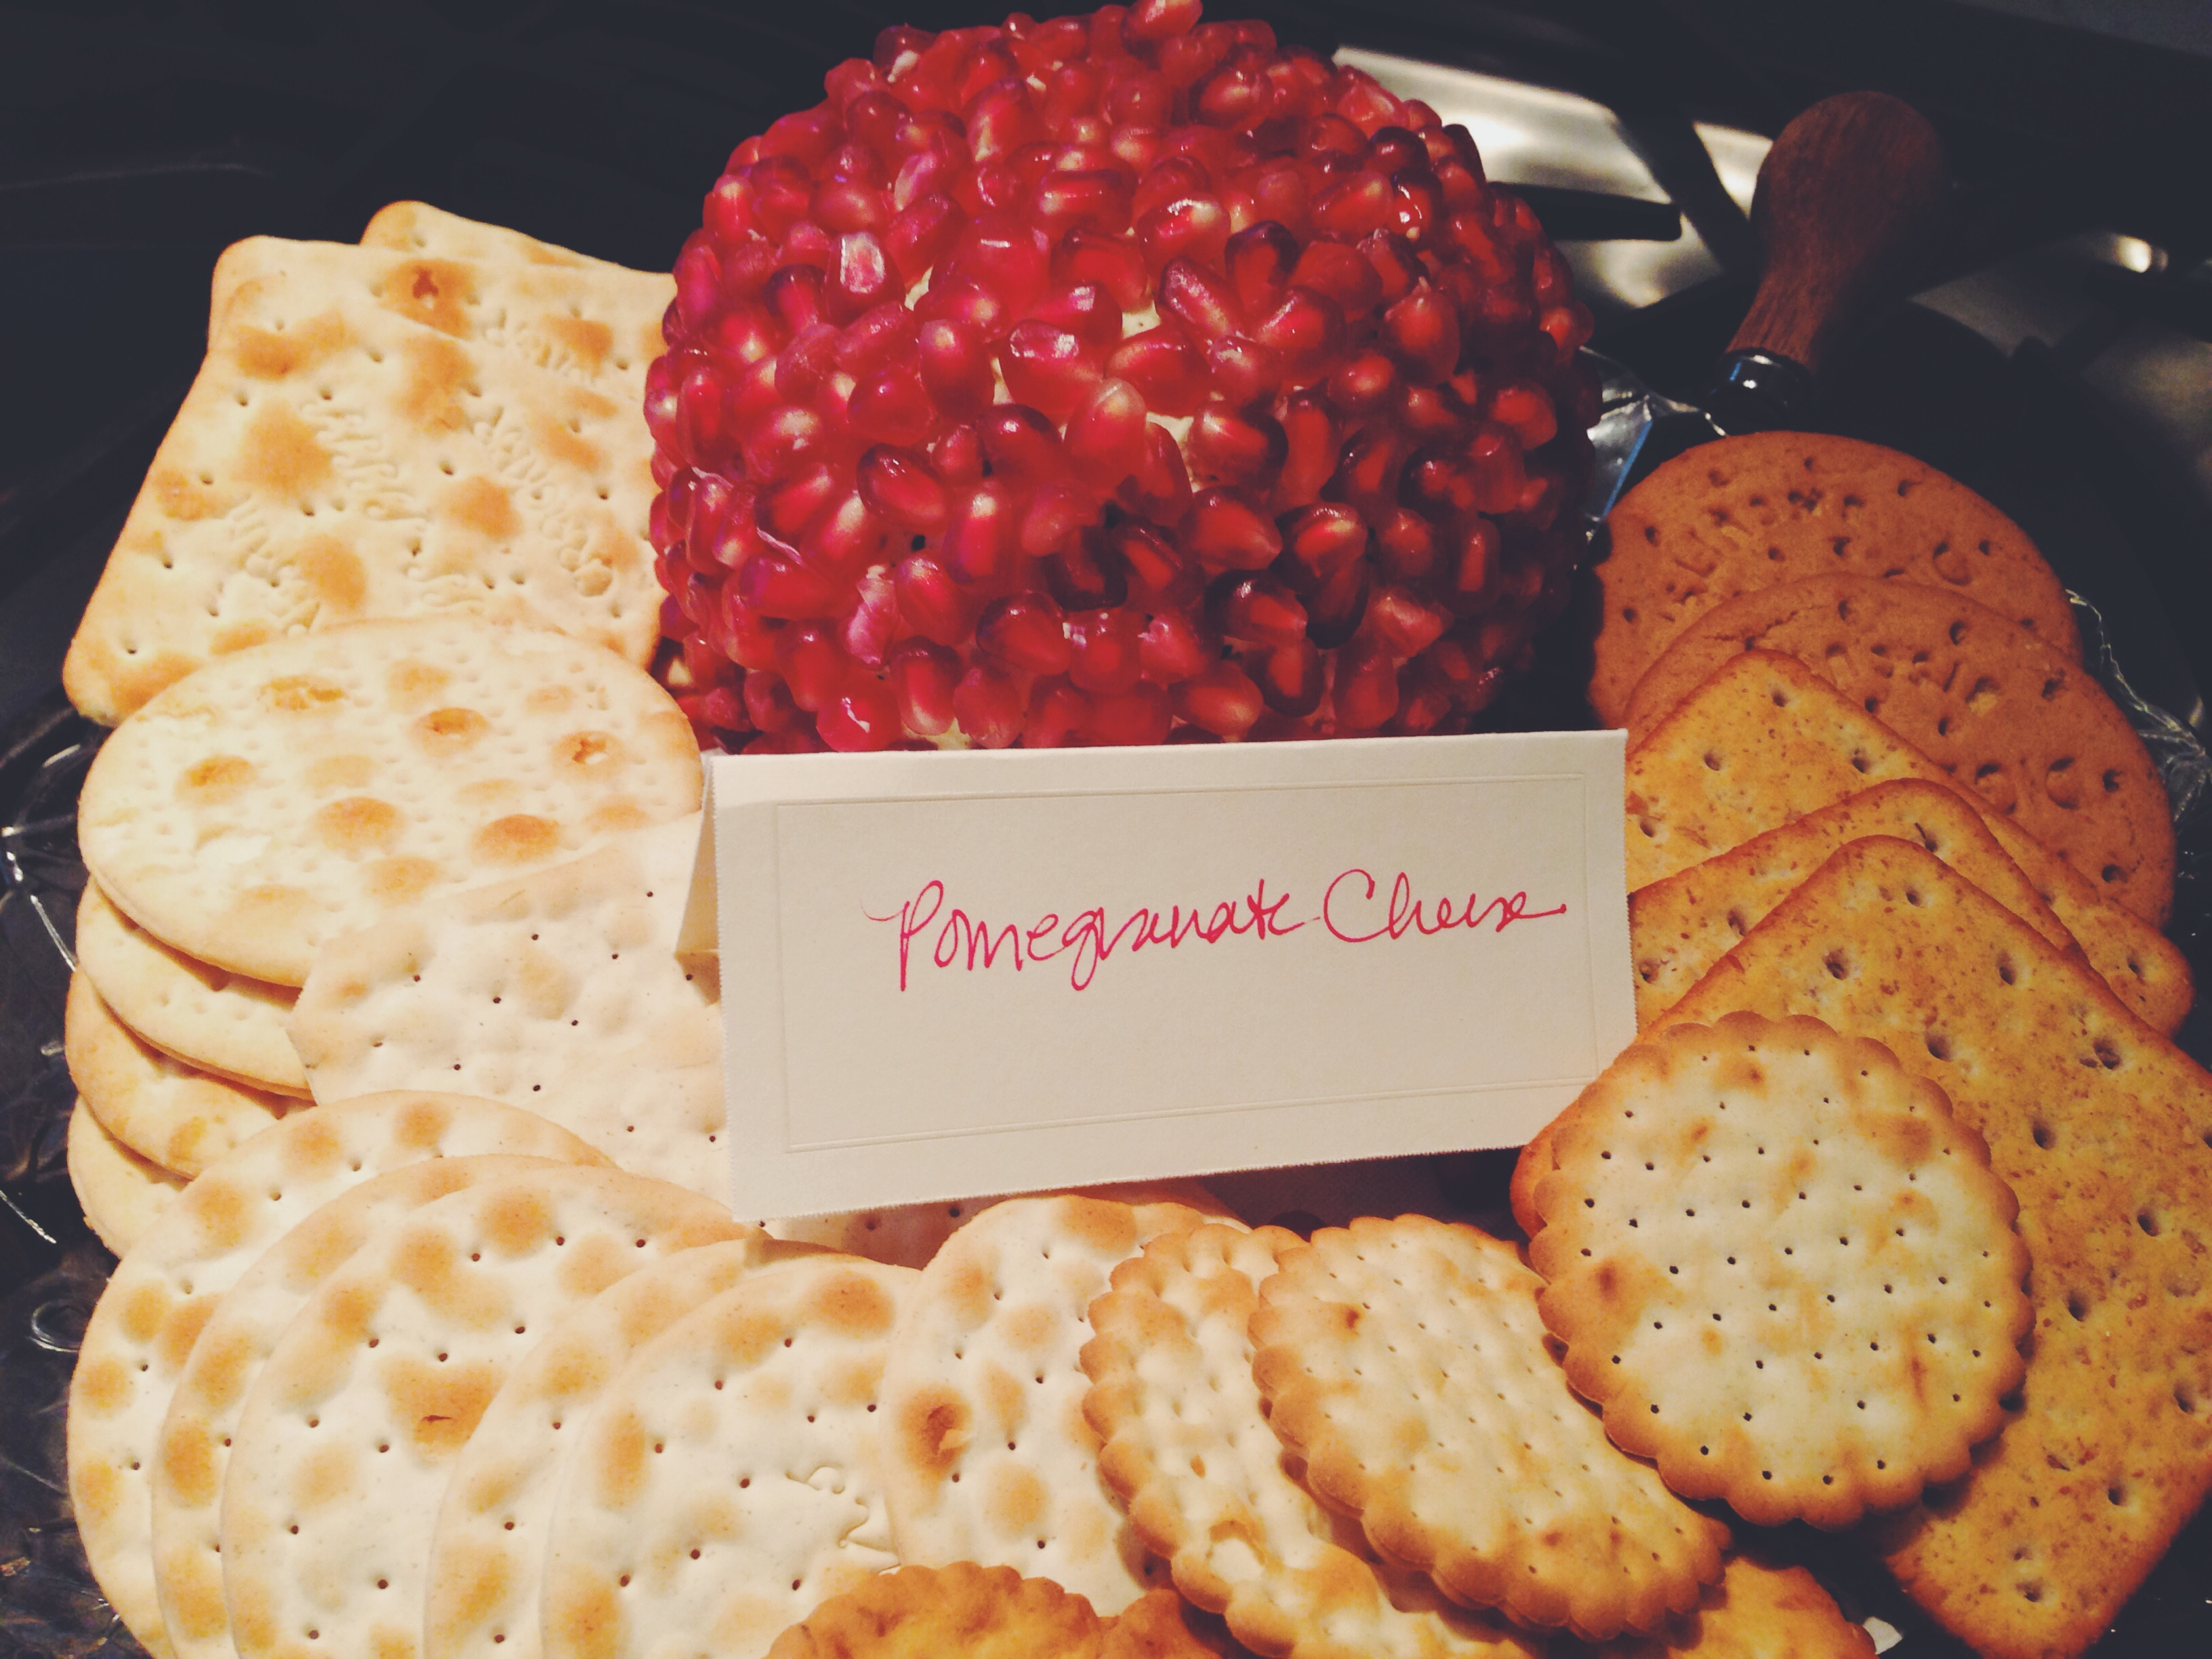 Pomegranate cheese